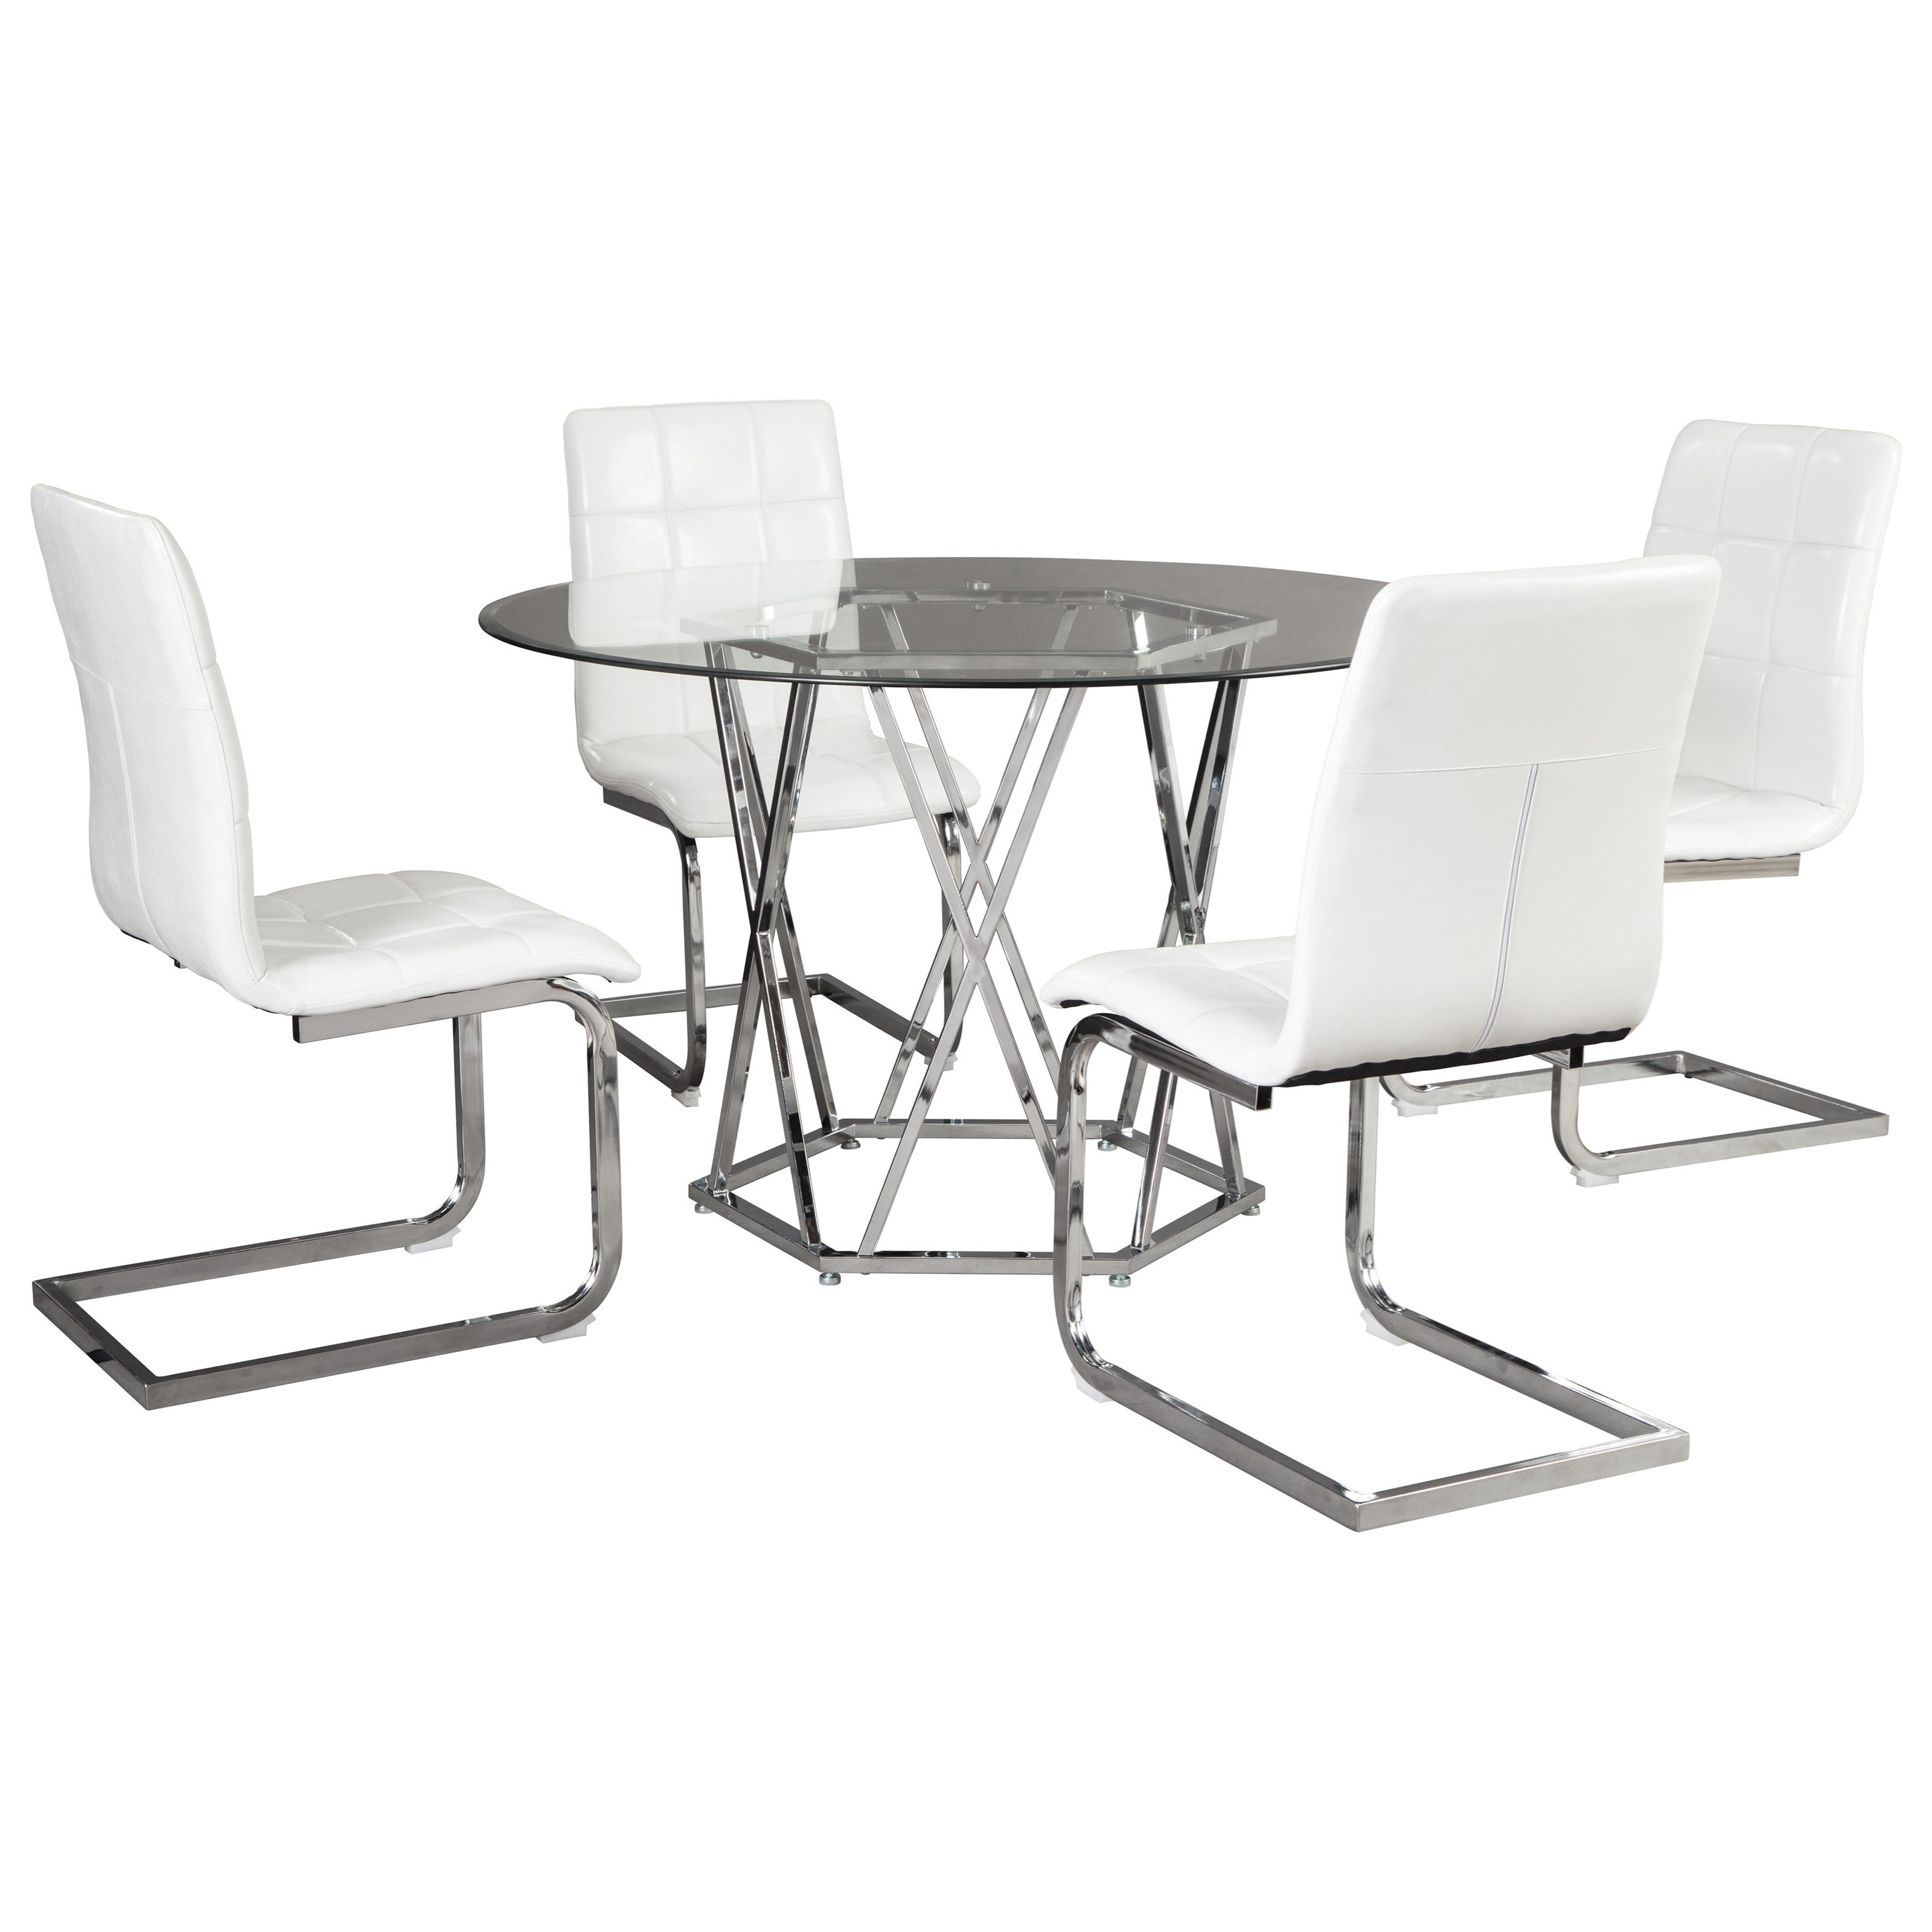 Sensational Contemporary Fully Upholstered Dining Side Chair By Uwap Interior Chair Design Uwaporg